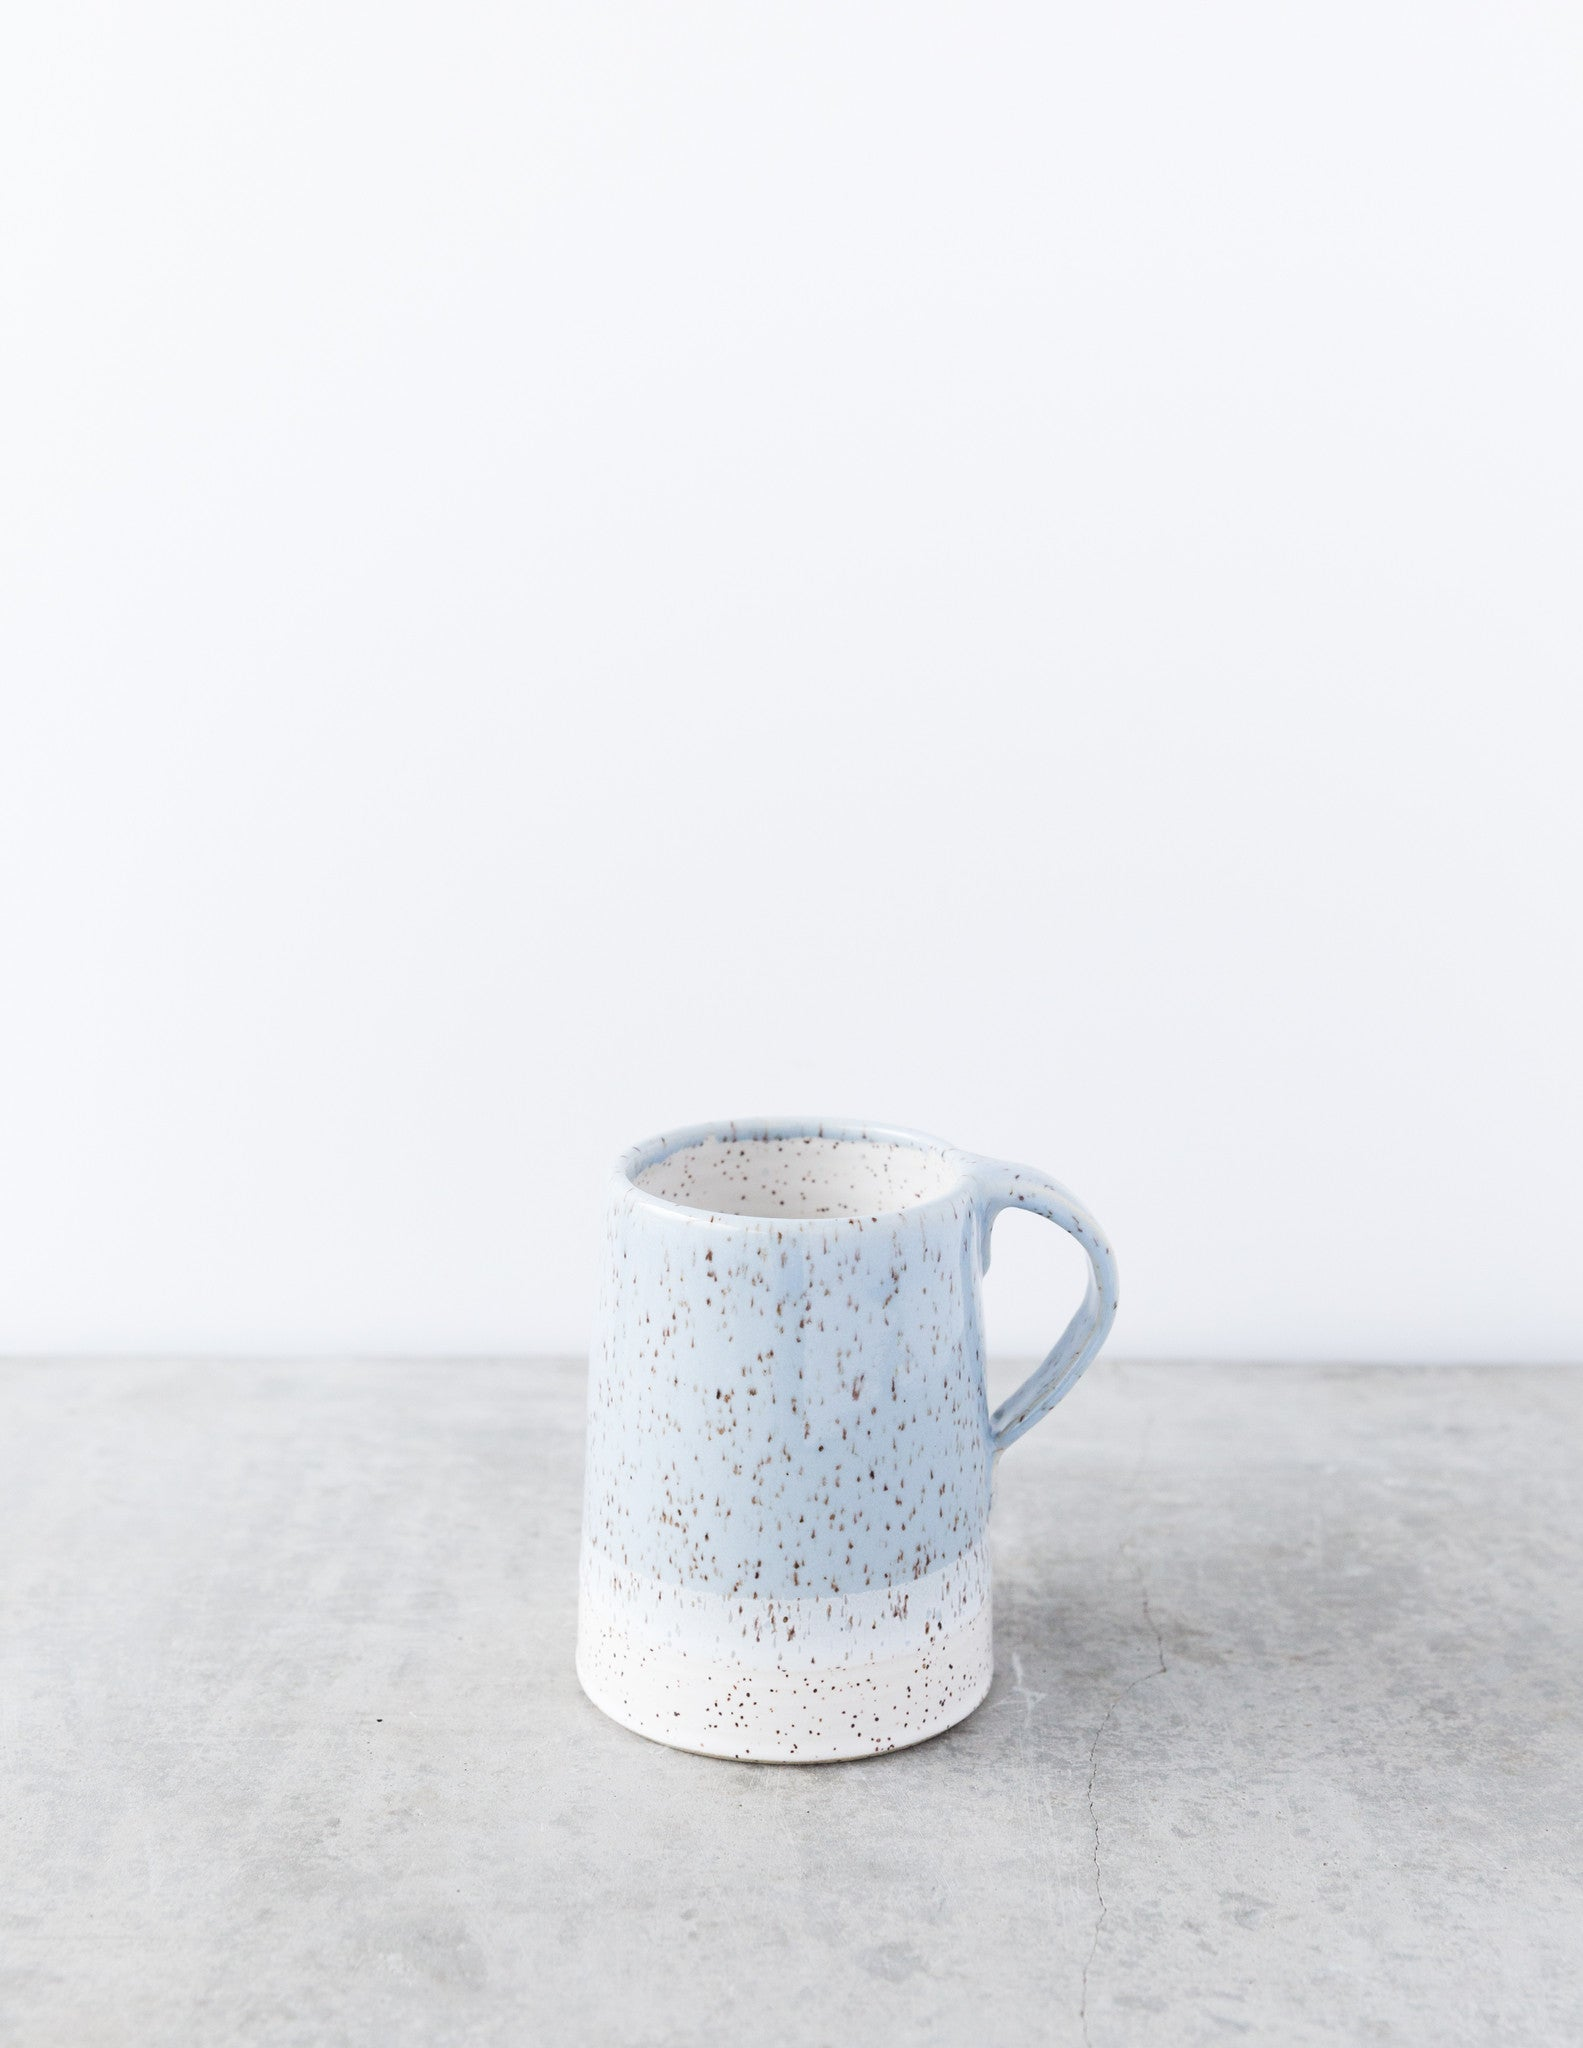 Dahlhaus Dipped Speckled Mug in Light Blue